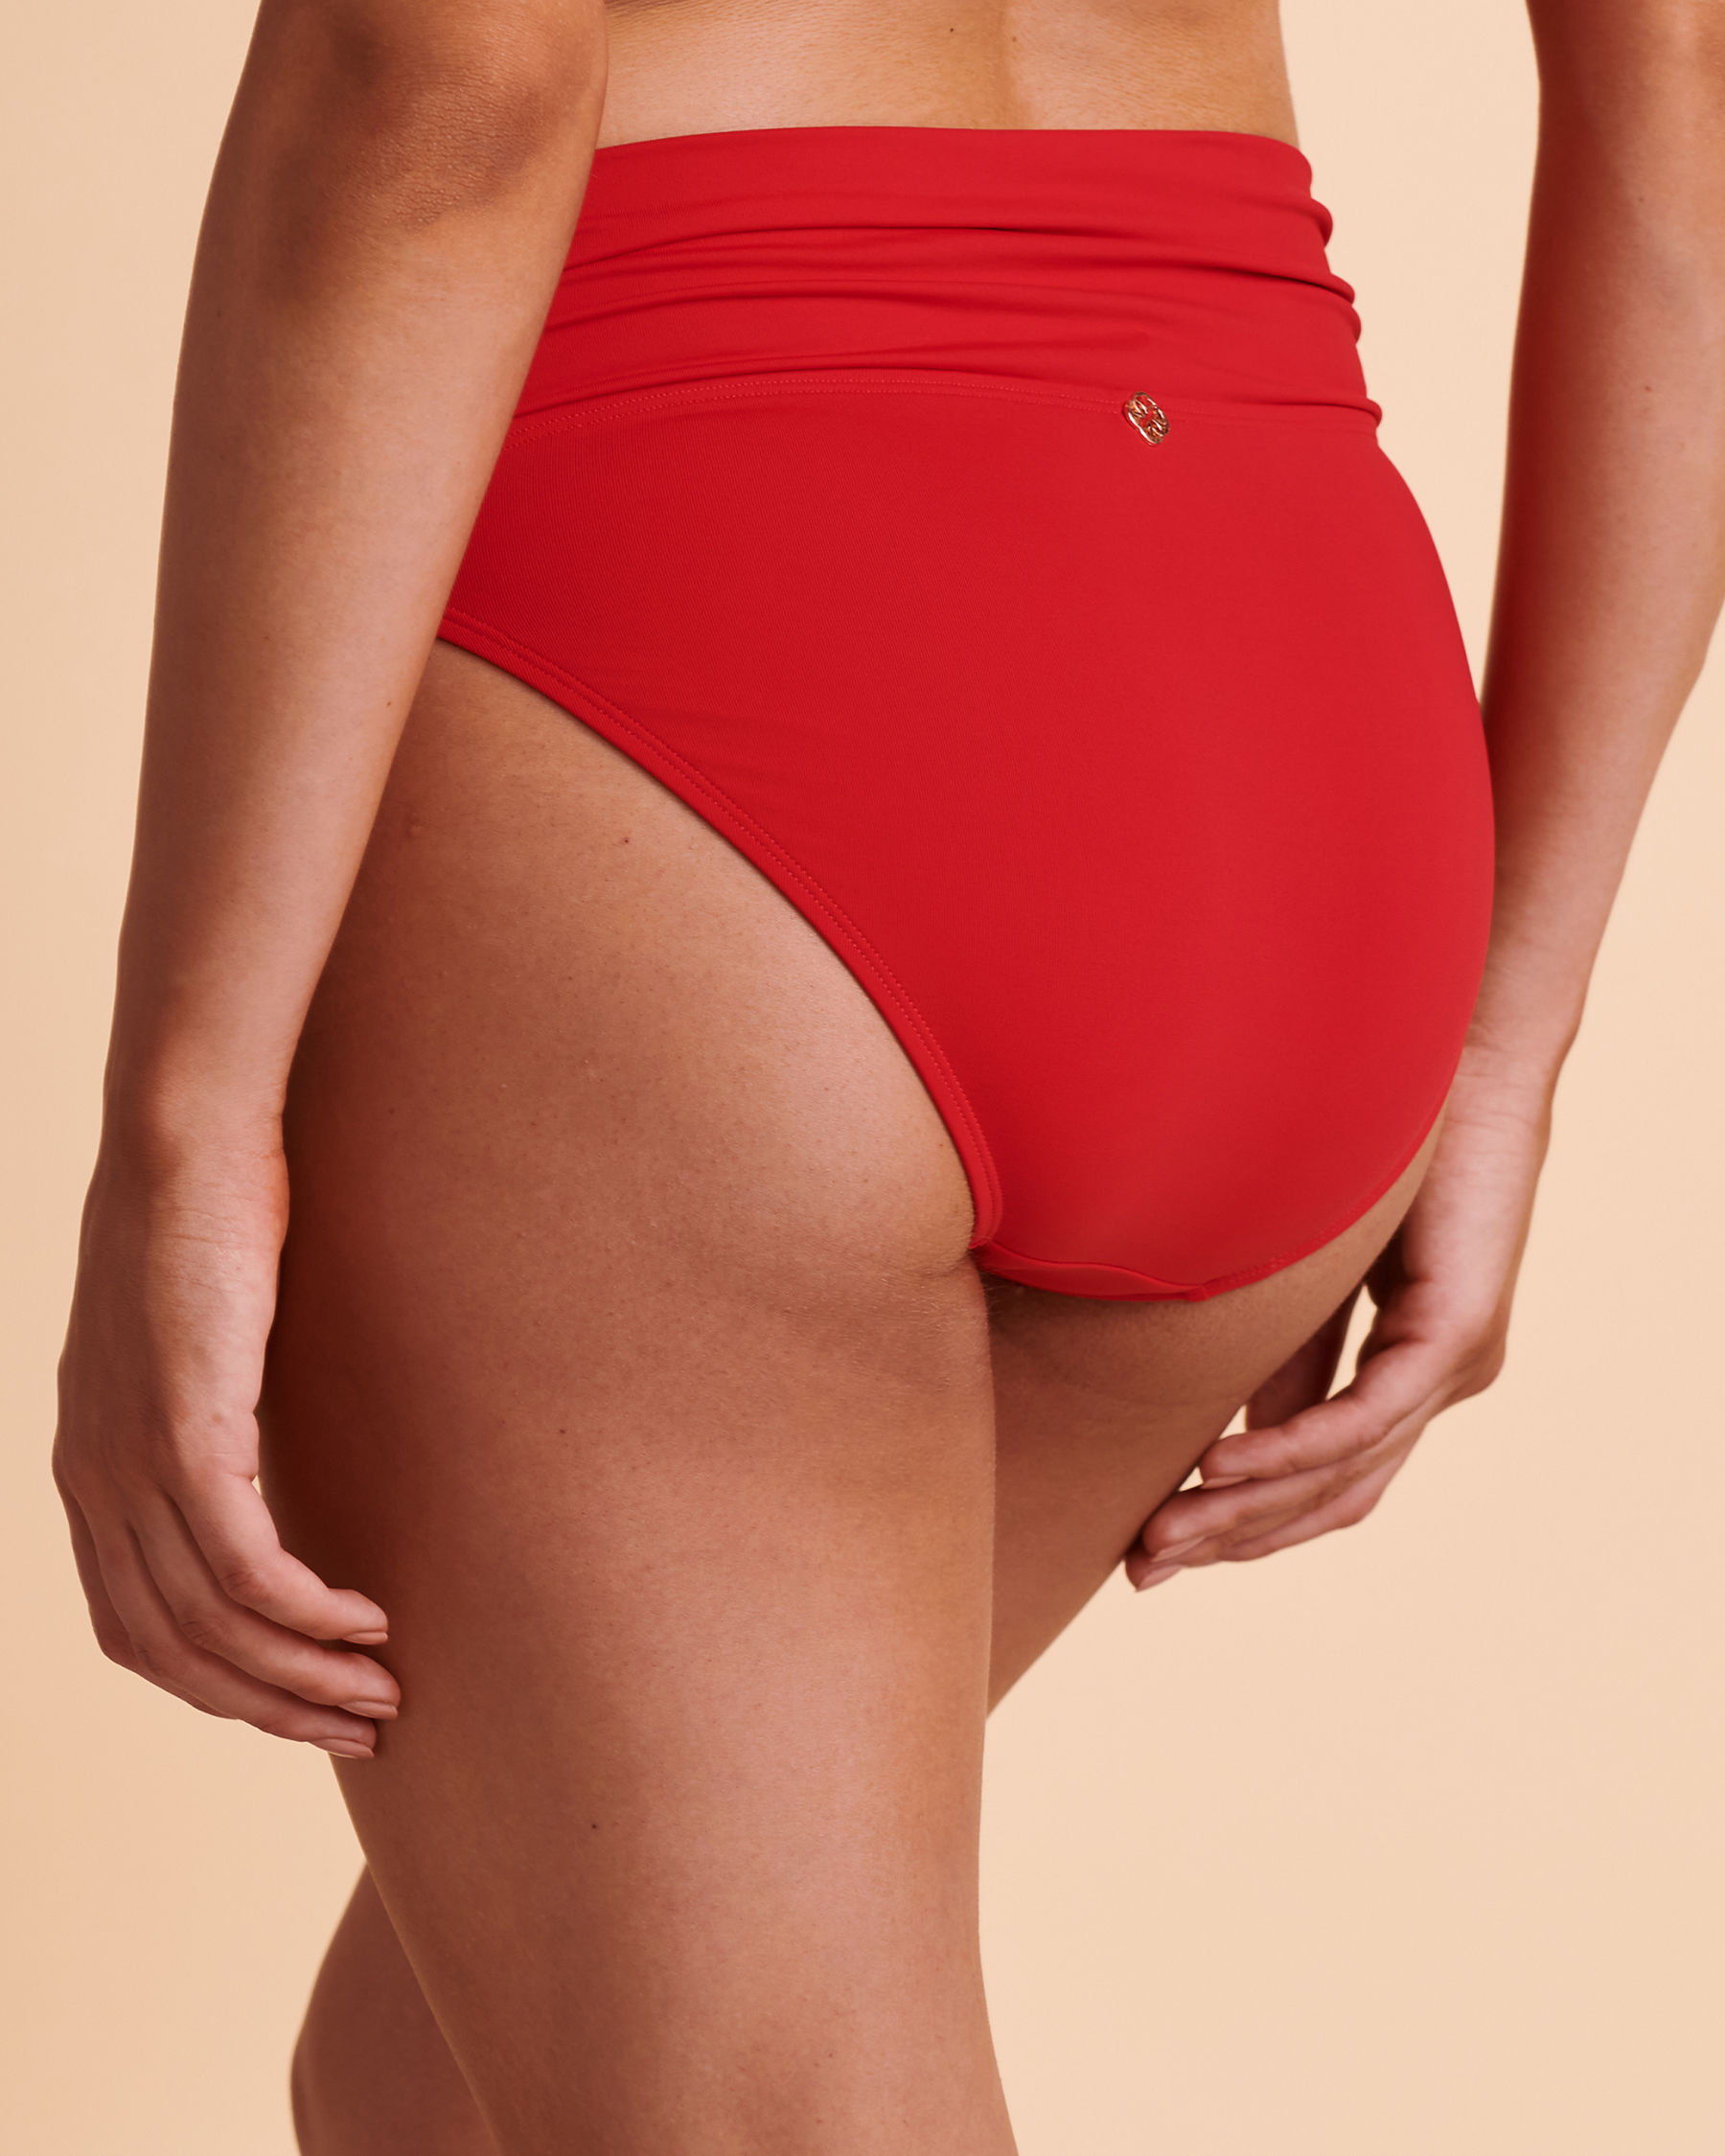 TURQUOISE COUTURE SOLID Foldable Waistband Bikini Bottom Red 01300007 - View2